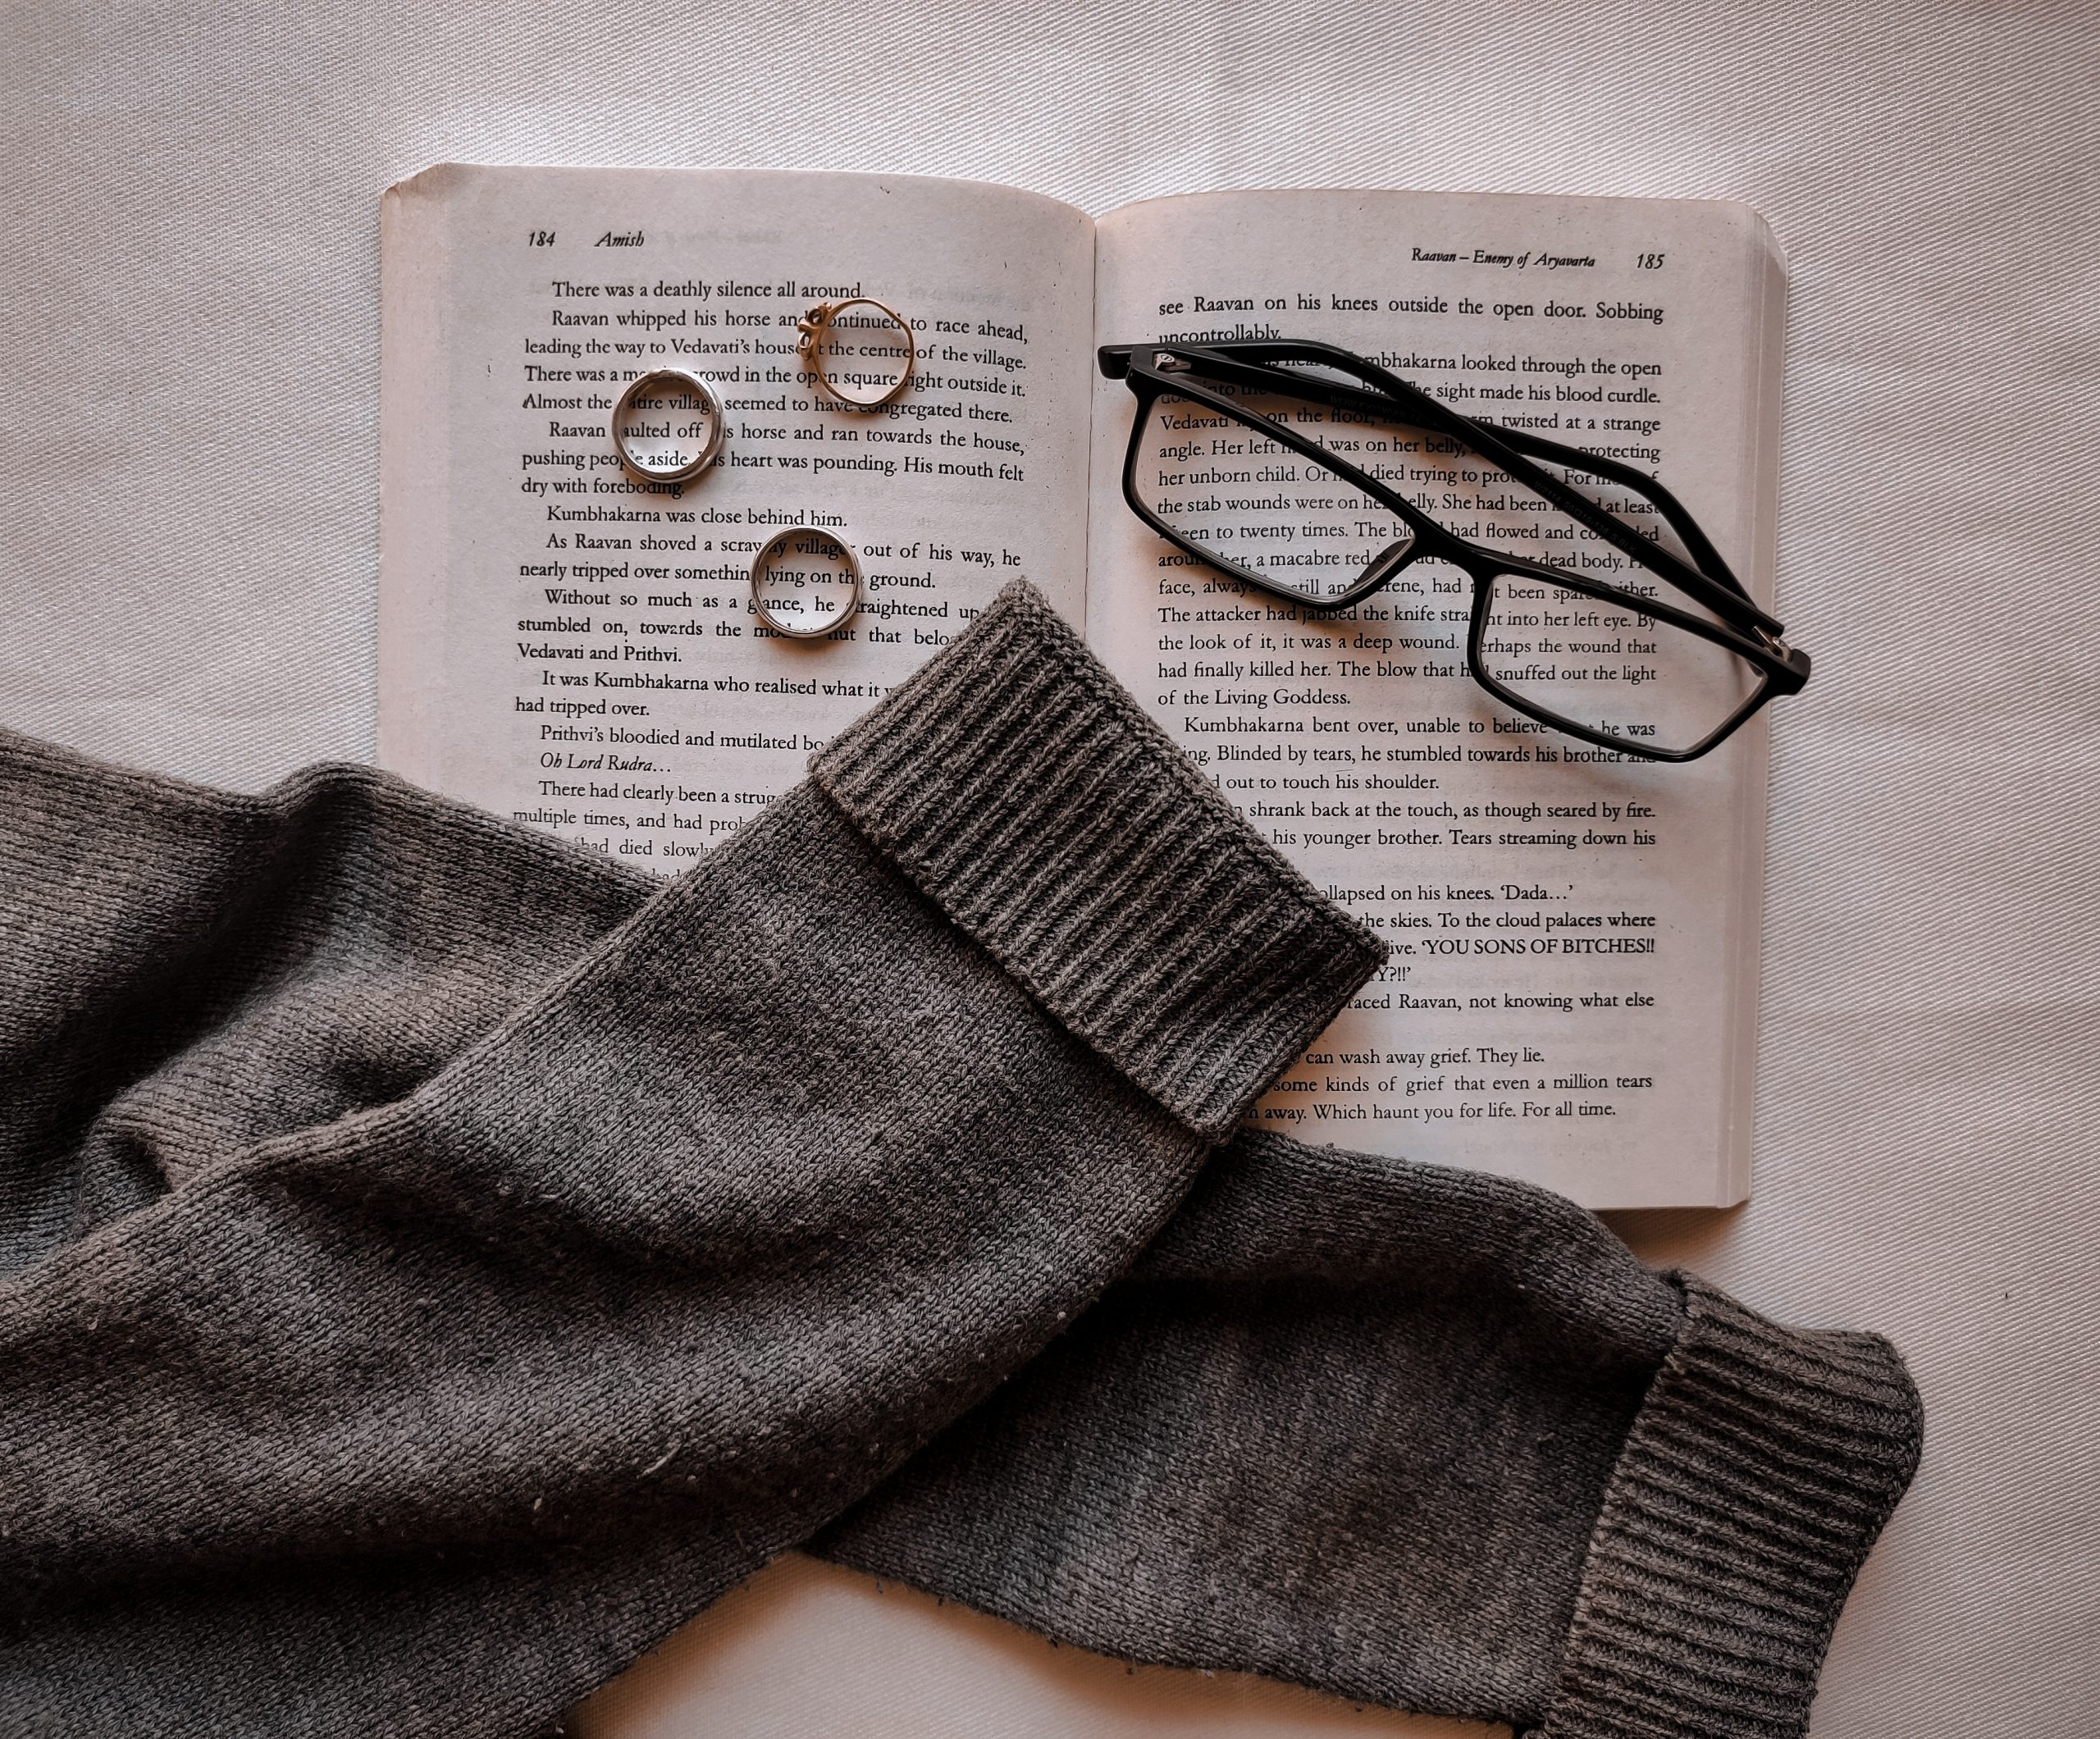 A book and sweater